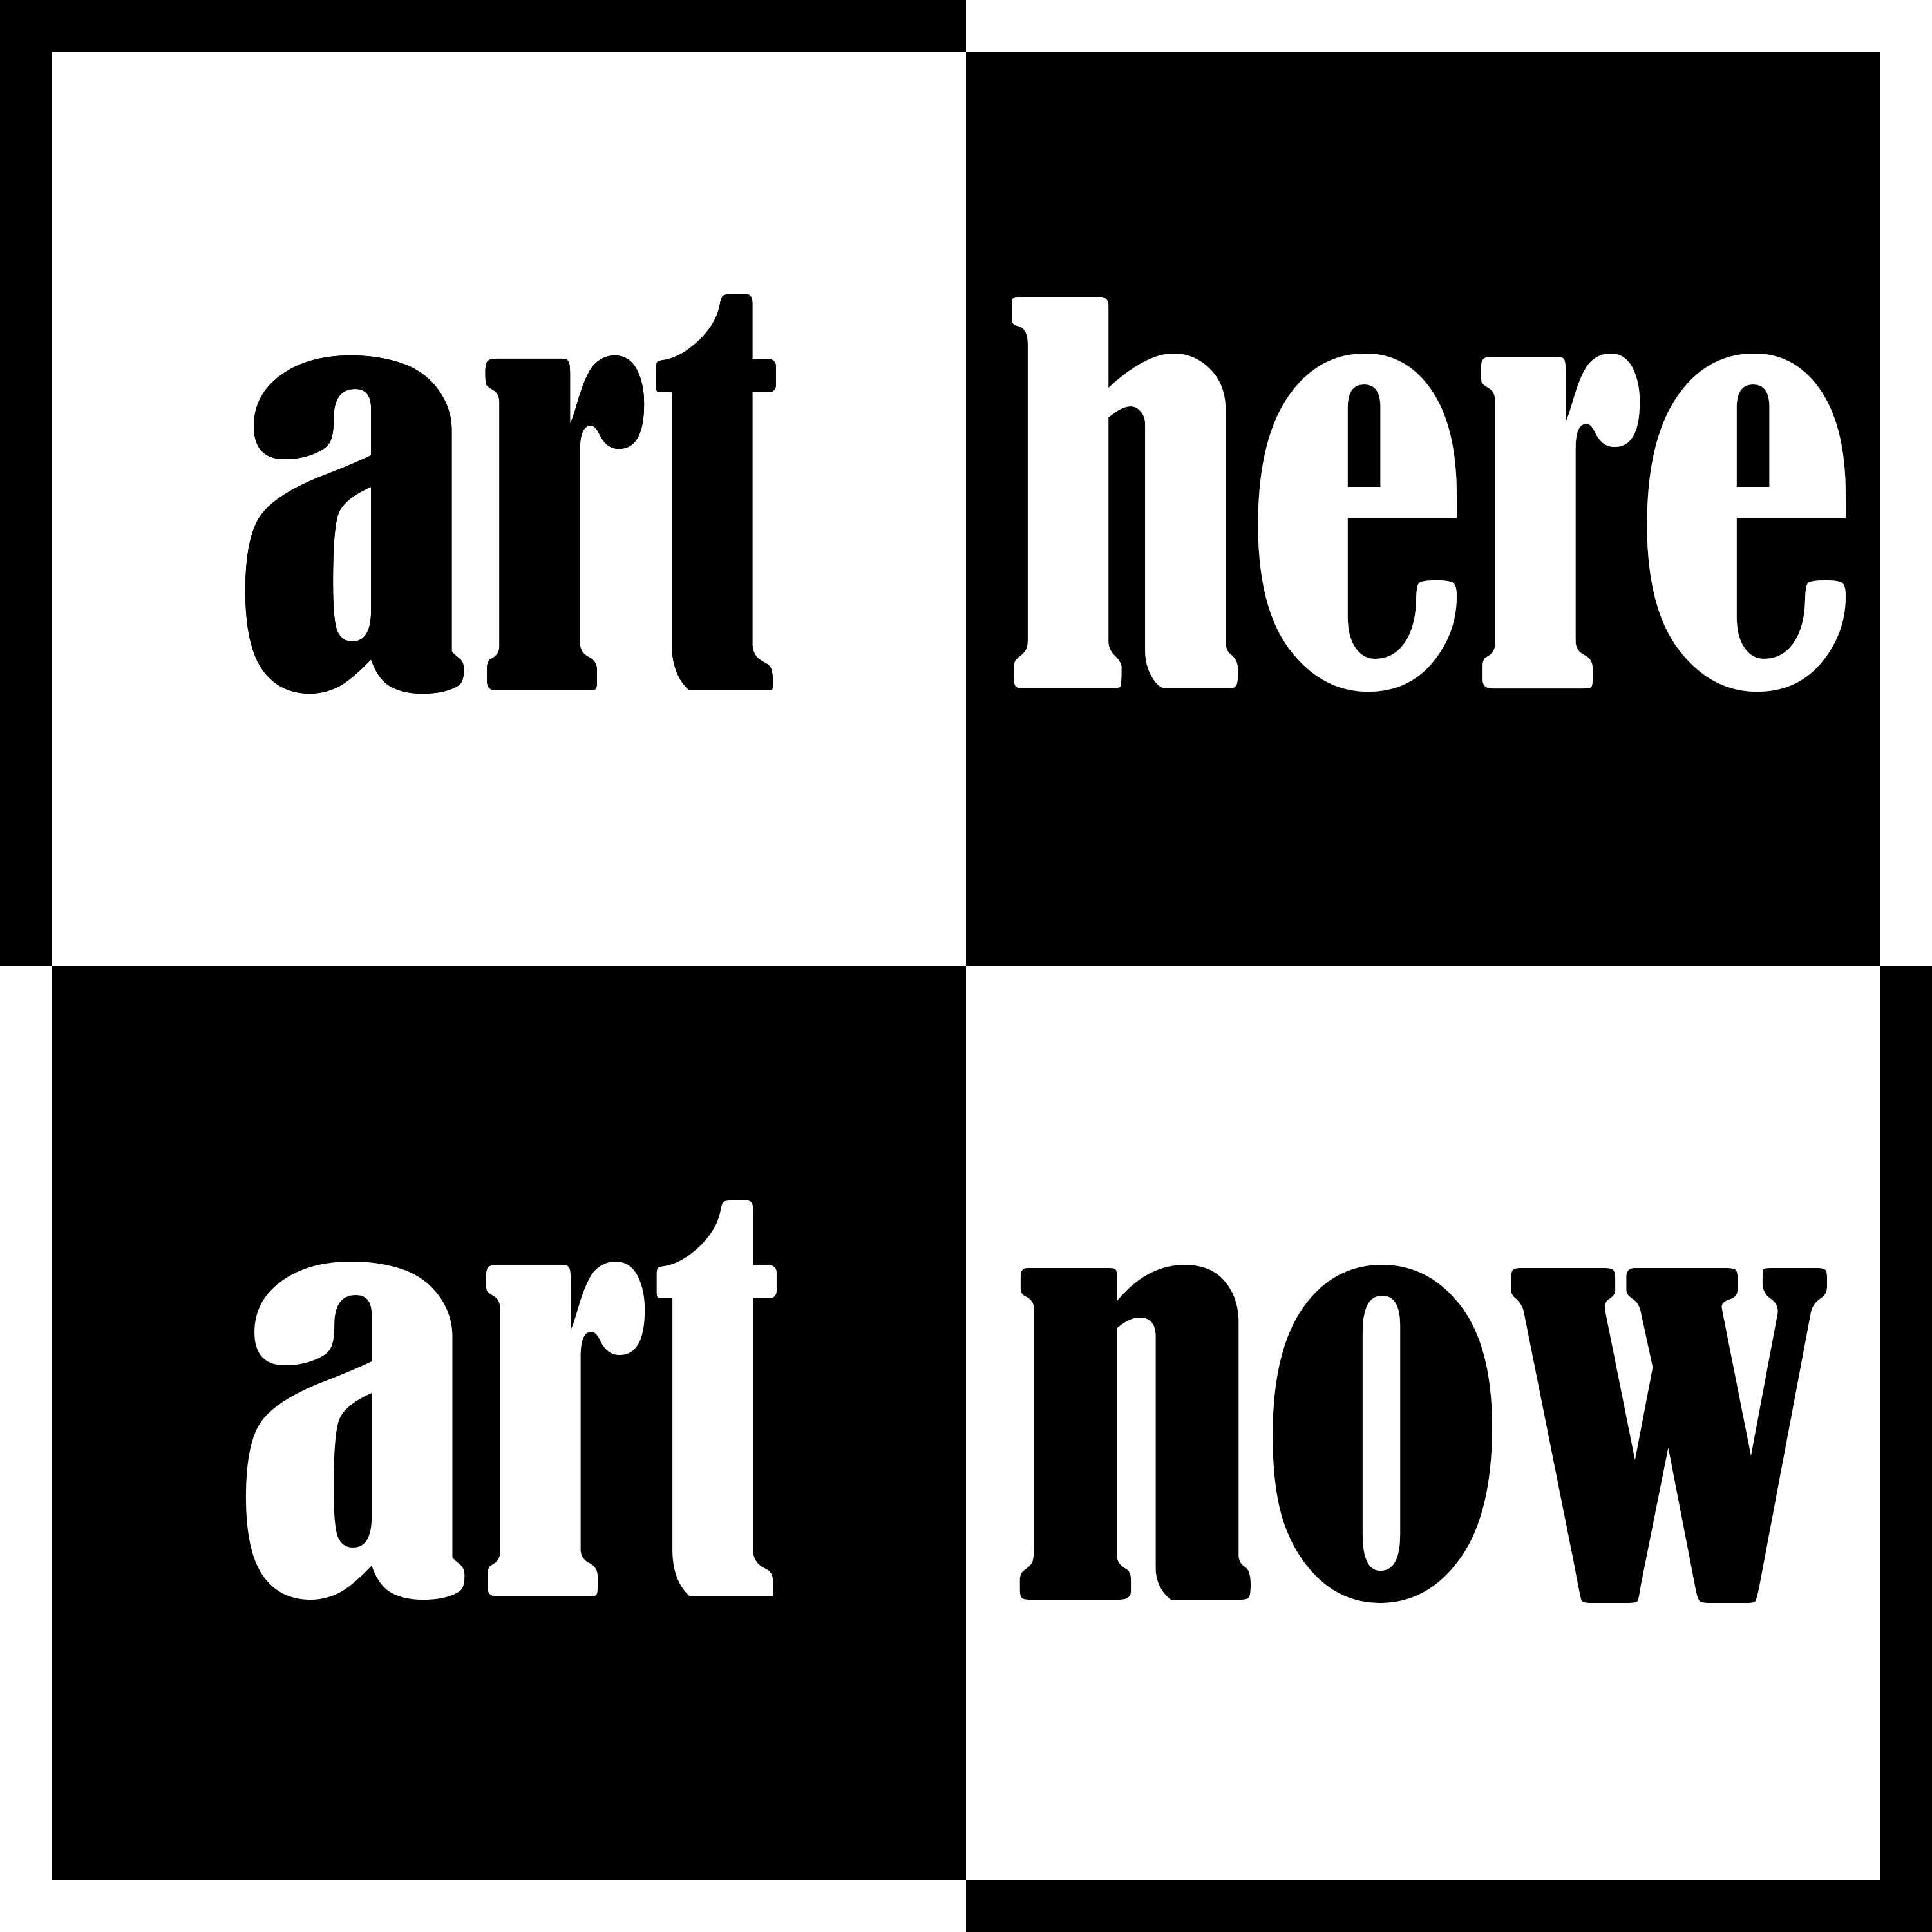 arthereartnow.com - Art website – film, literature, music, theater, fine arts